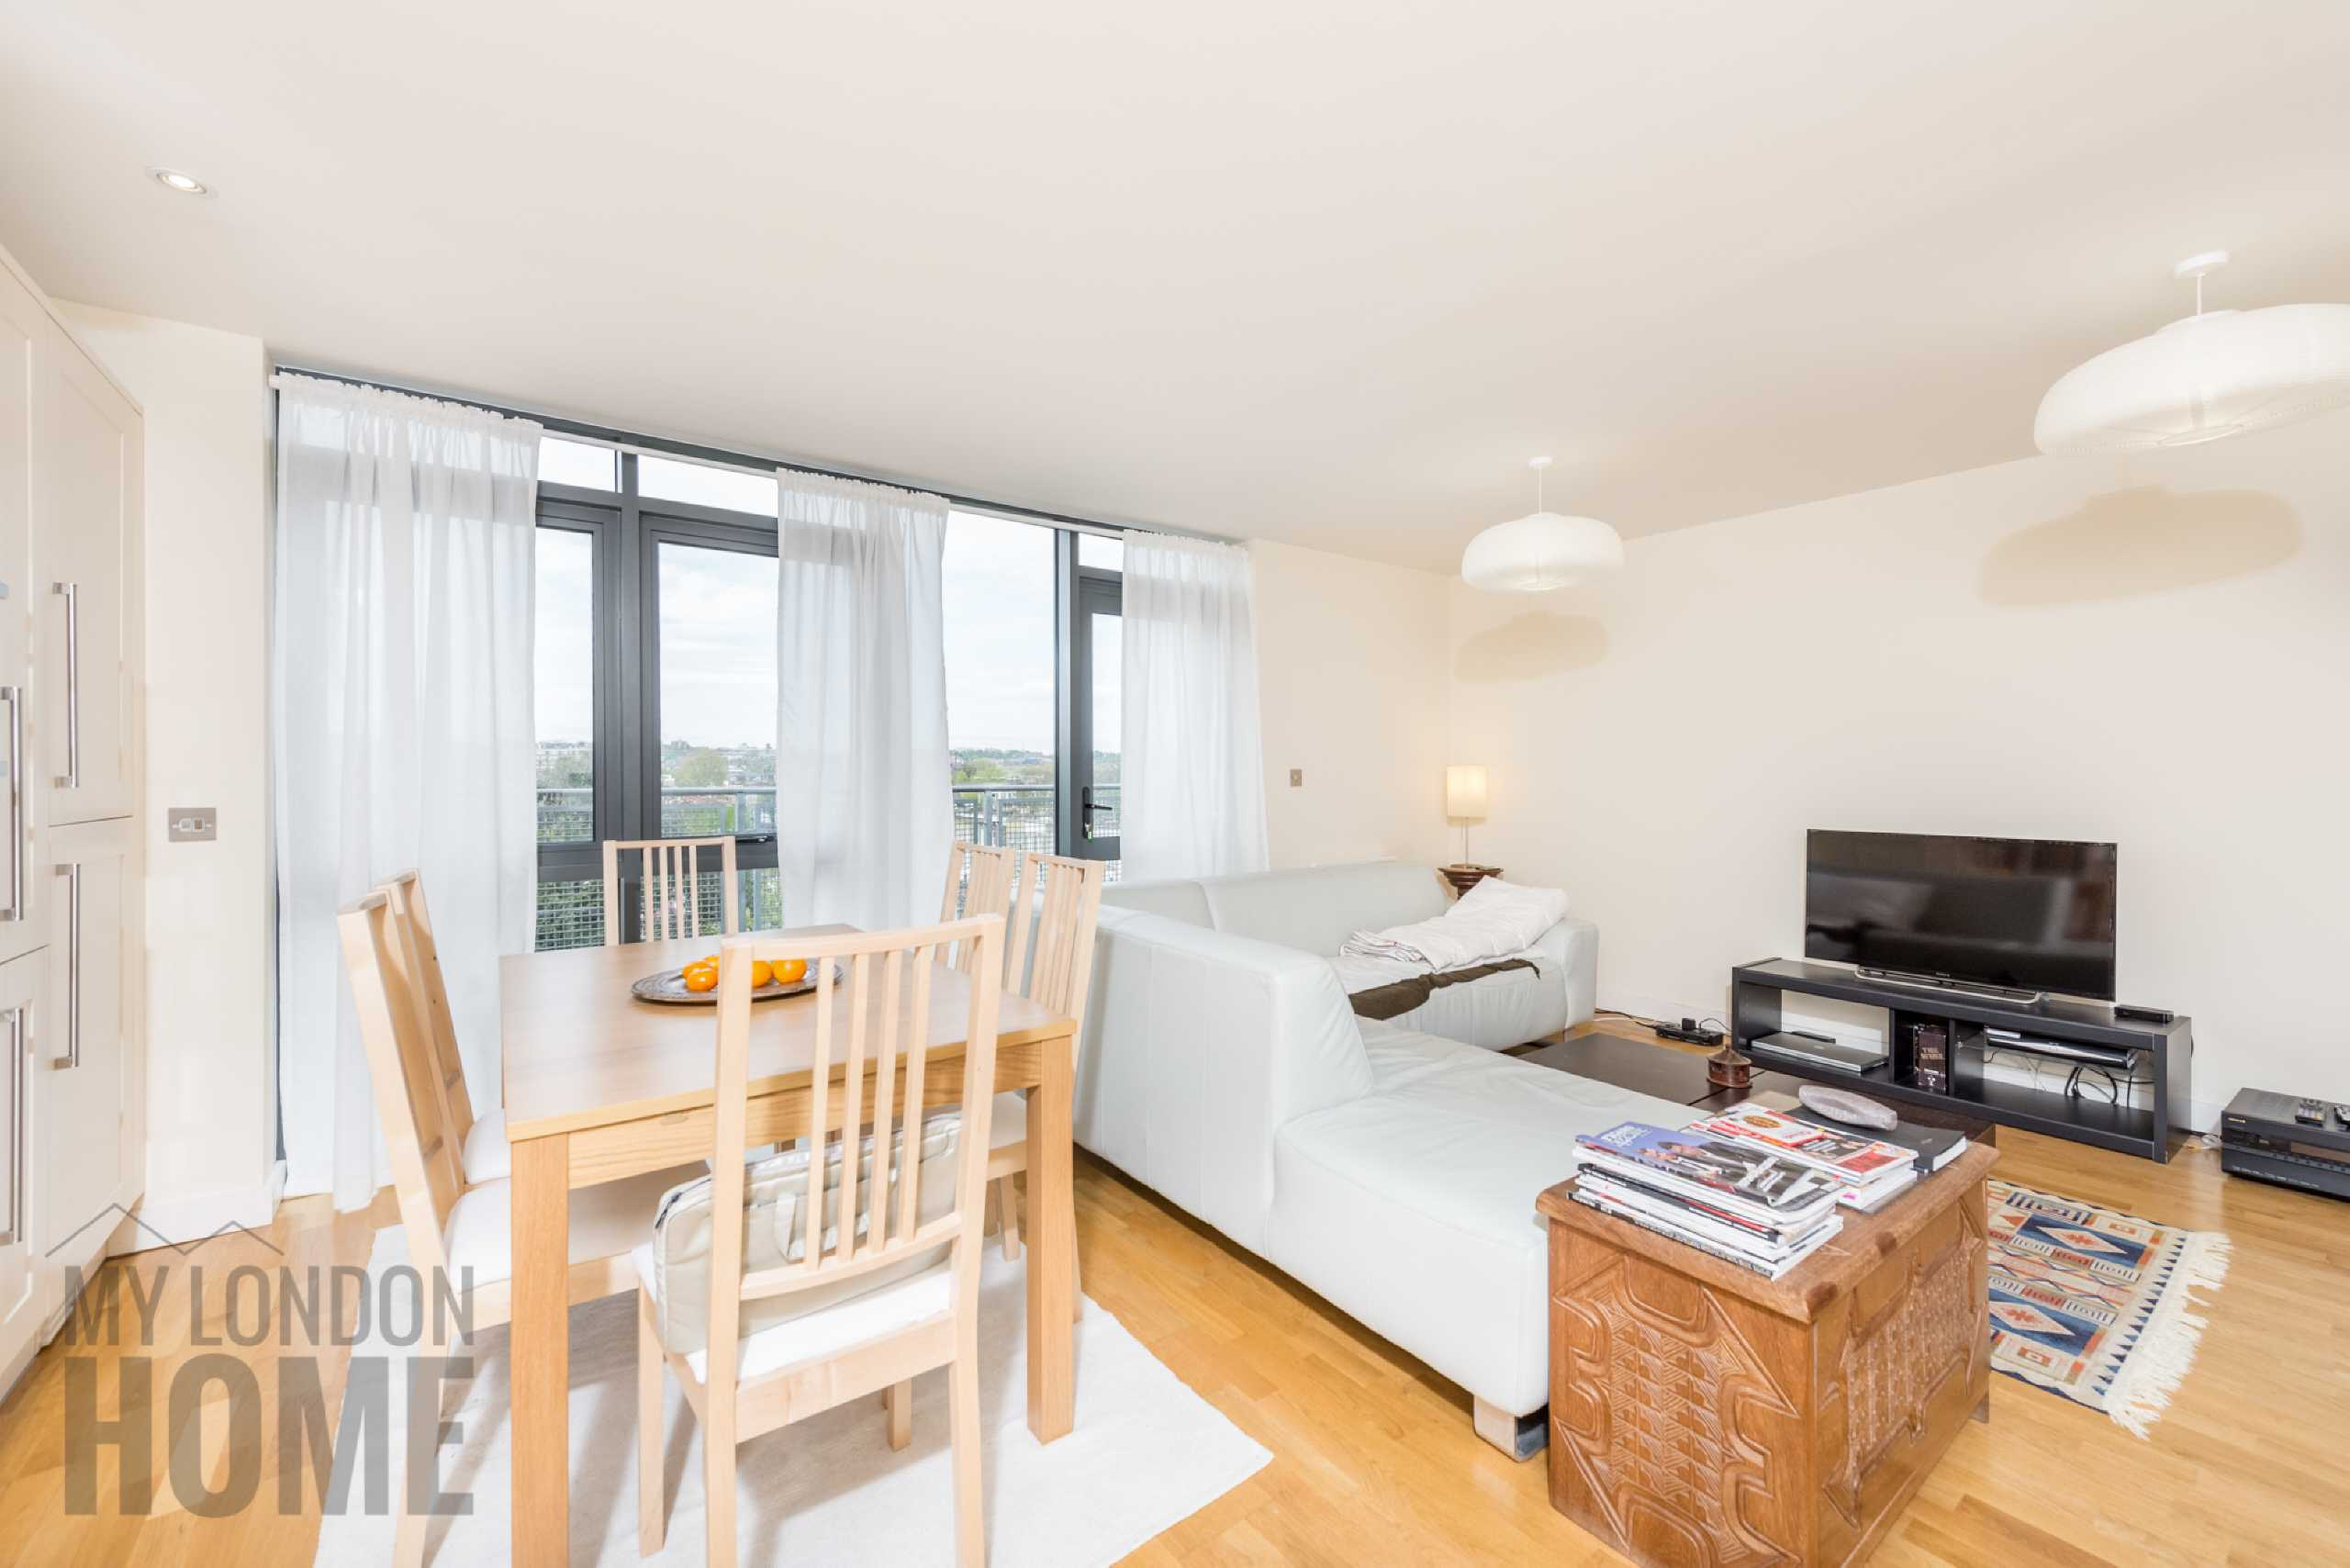 2 Bedrooms Apartment Flat for sale in The Drapery, 133 Axminster Road, Holloway, London, N7